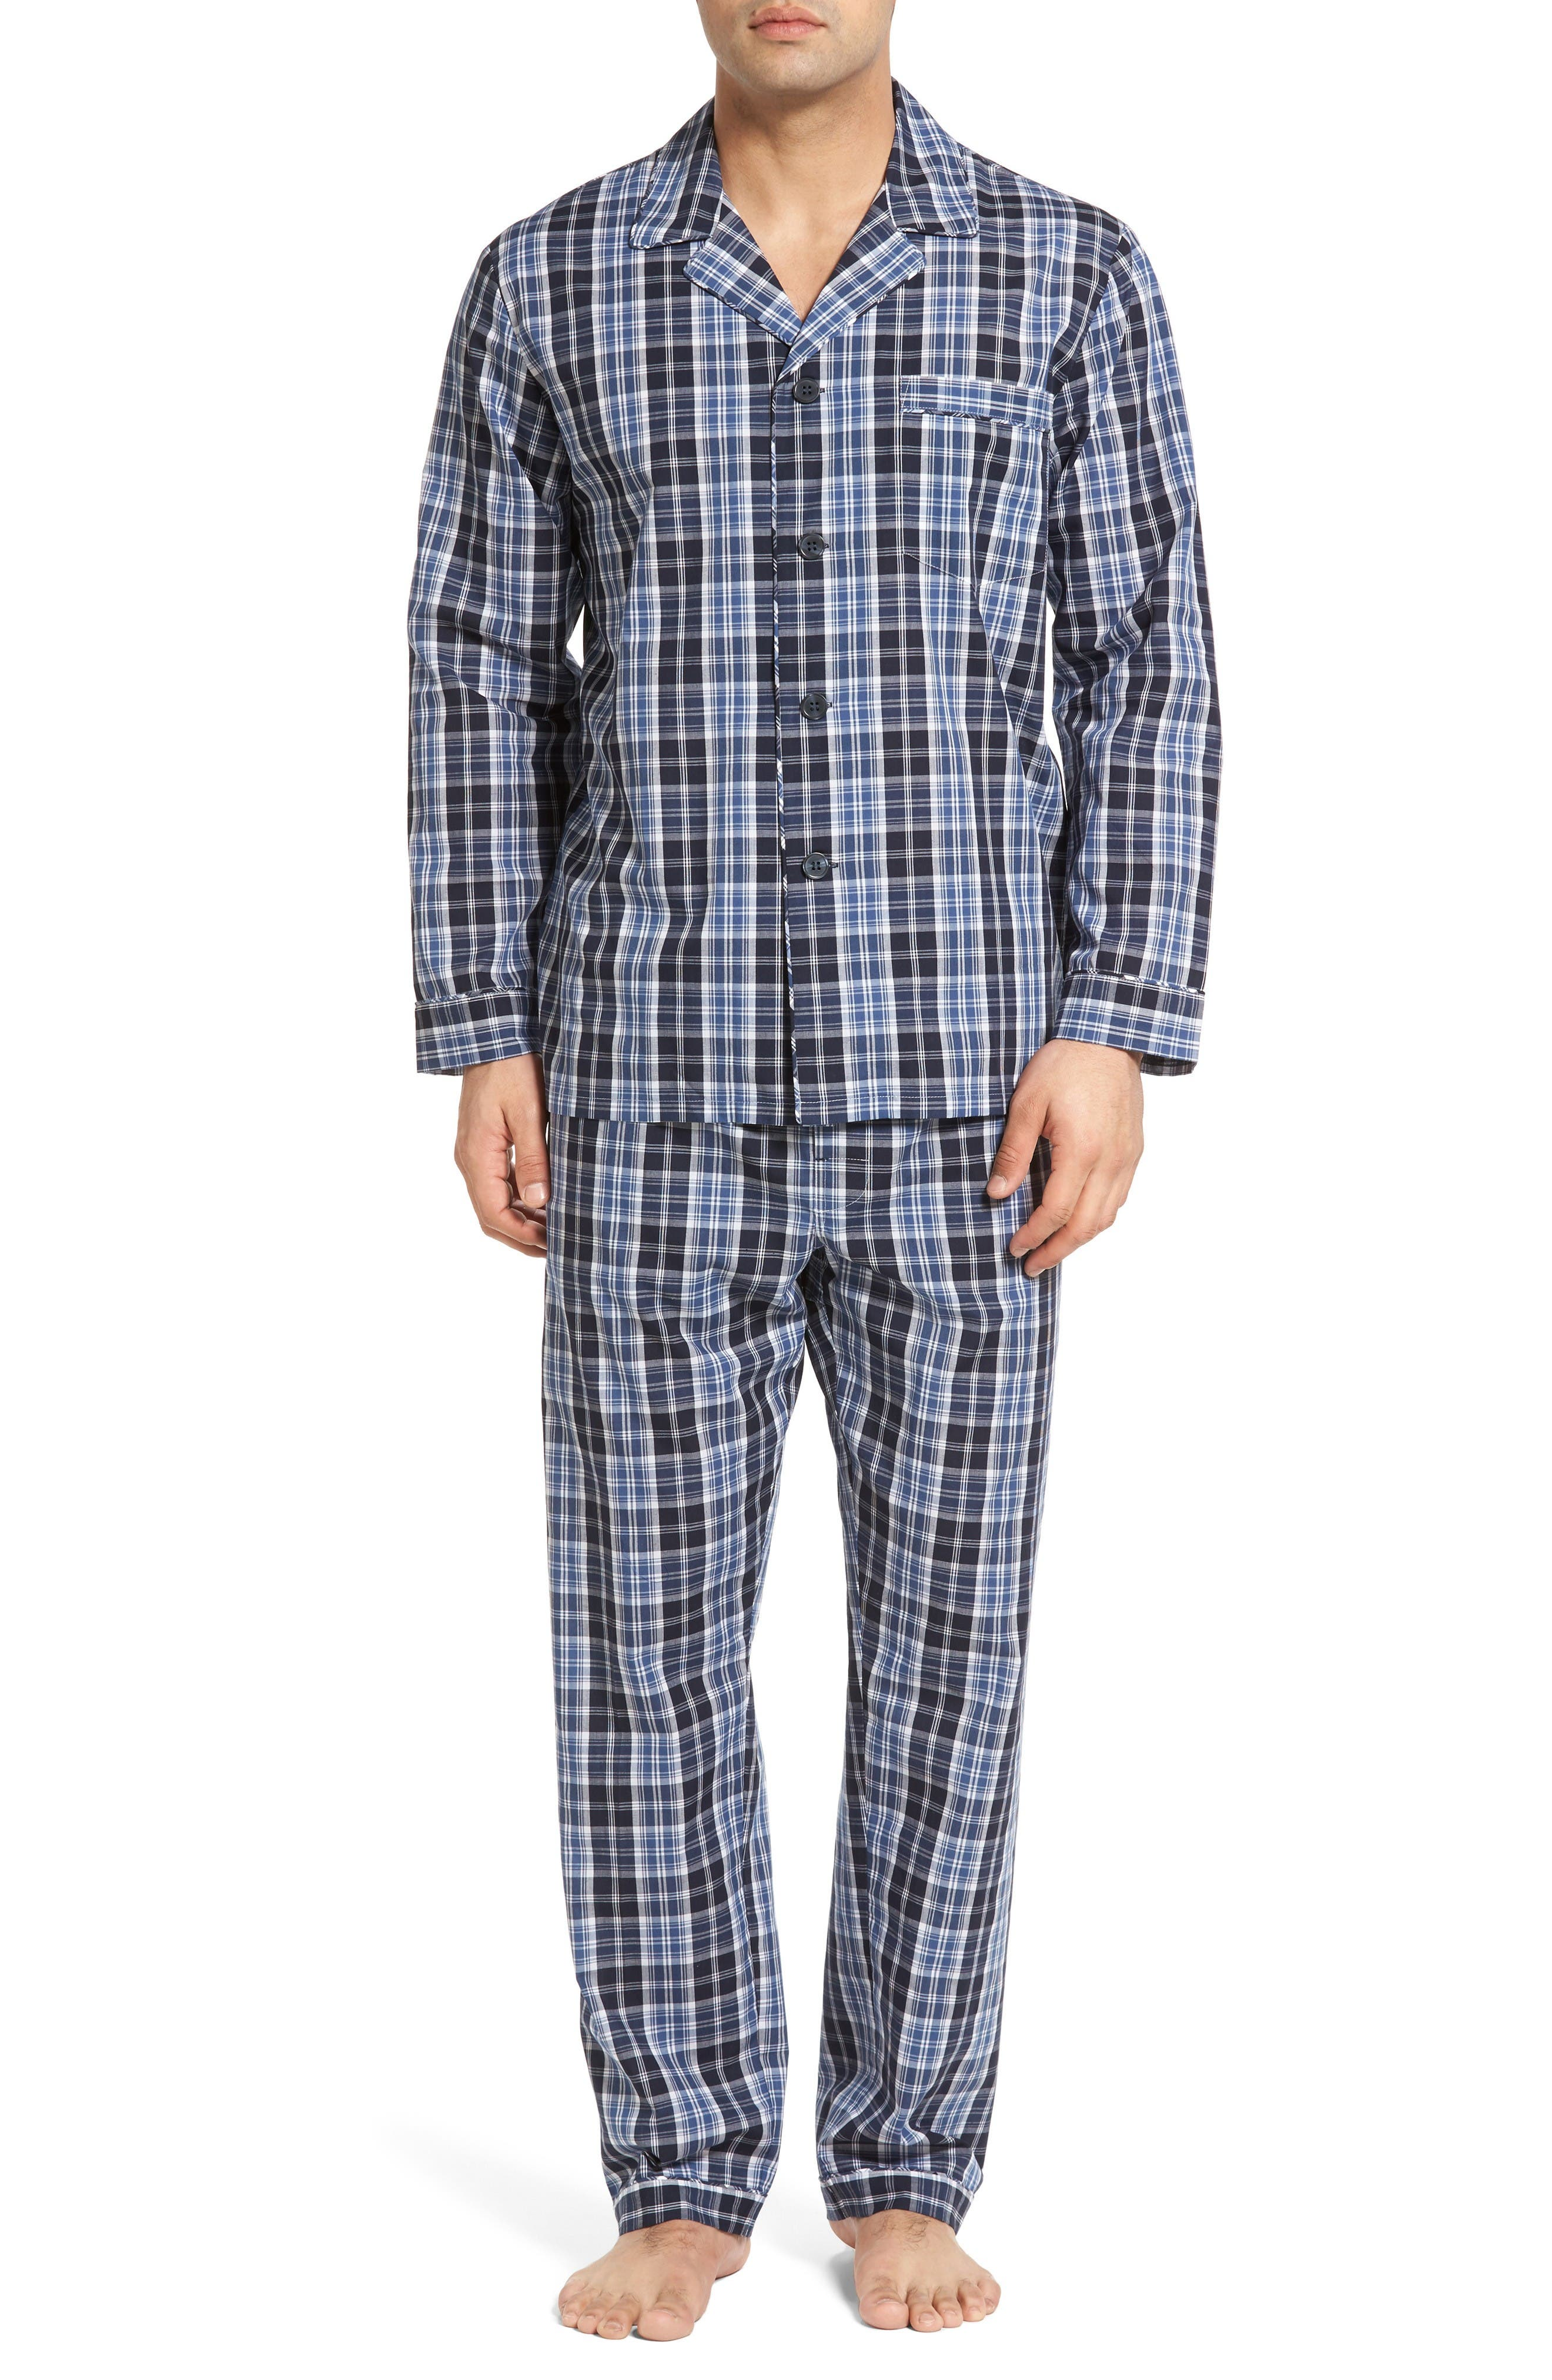 Main Image - Majestic International 'Ryden' Cotton Blend Pajamas